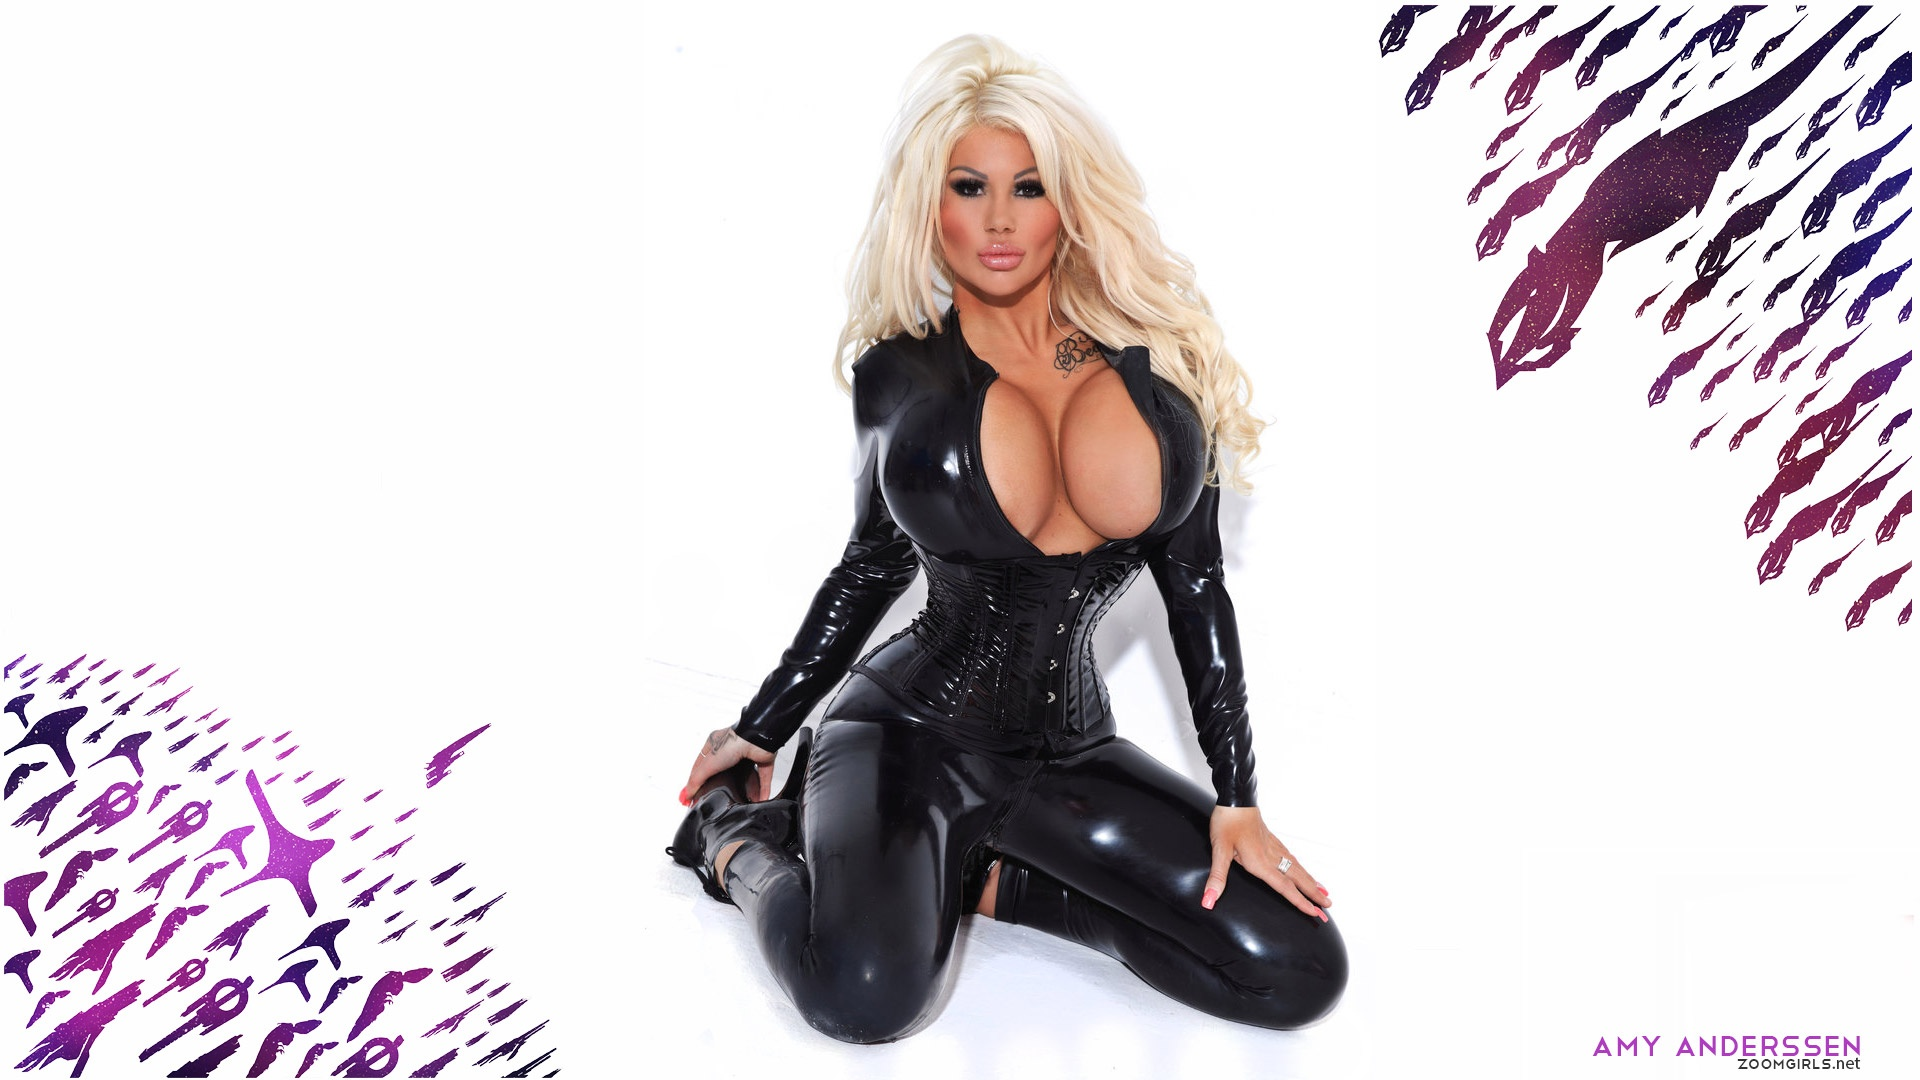 The Hottest Pornstars Ever Only On Zoomgirls Net Added June 21 2014 Amy Anderssen